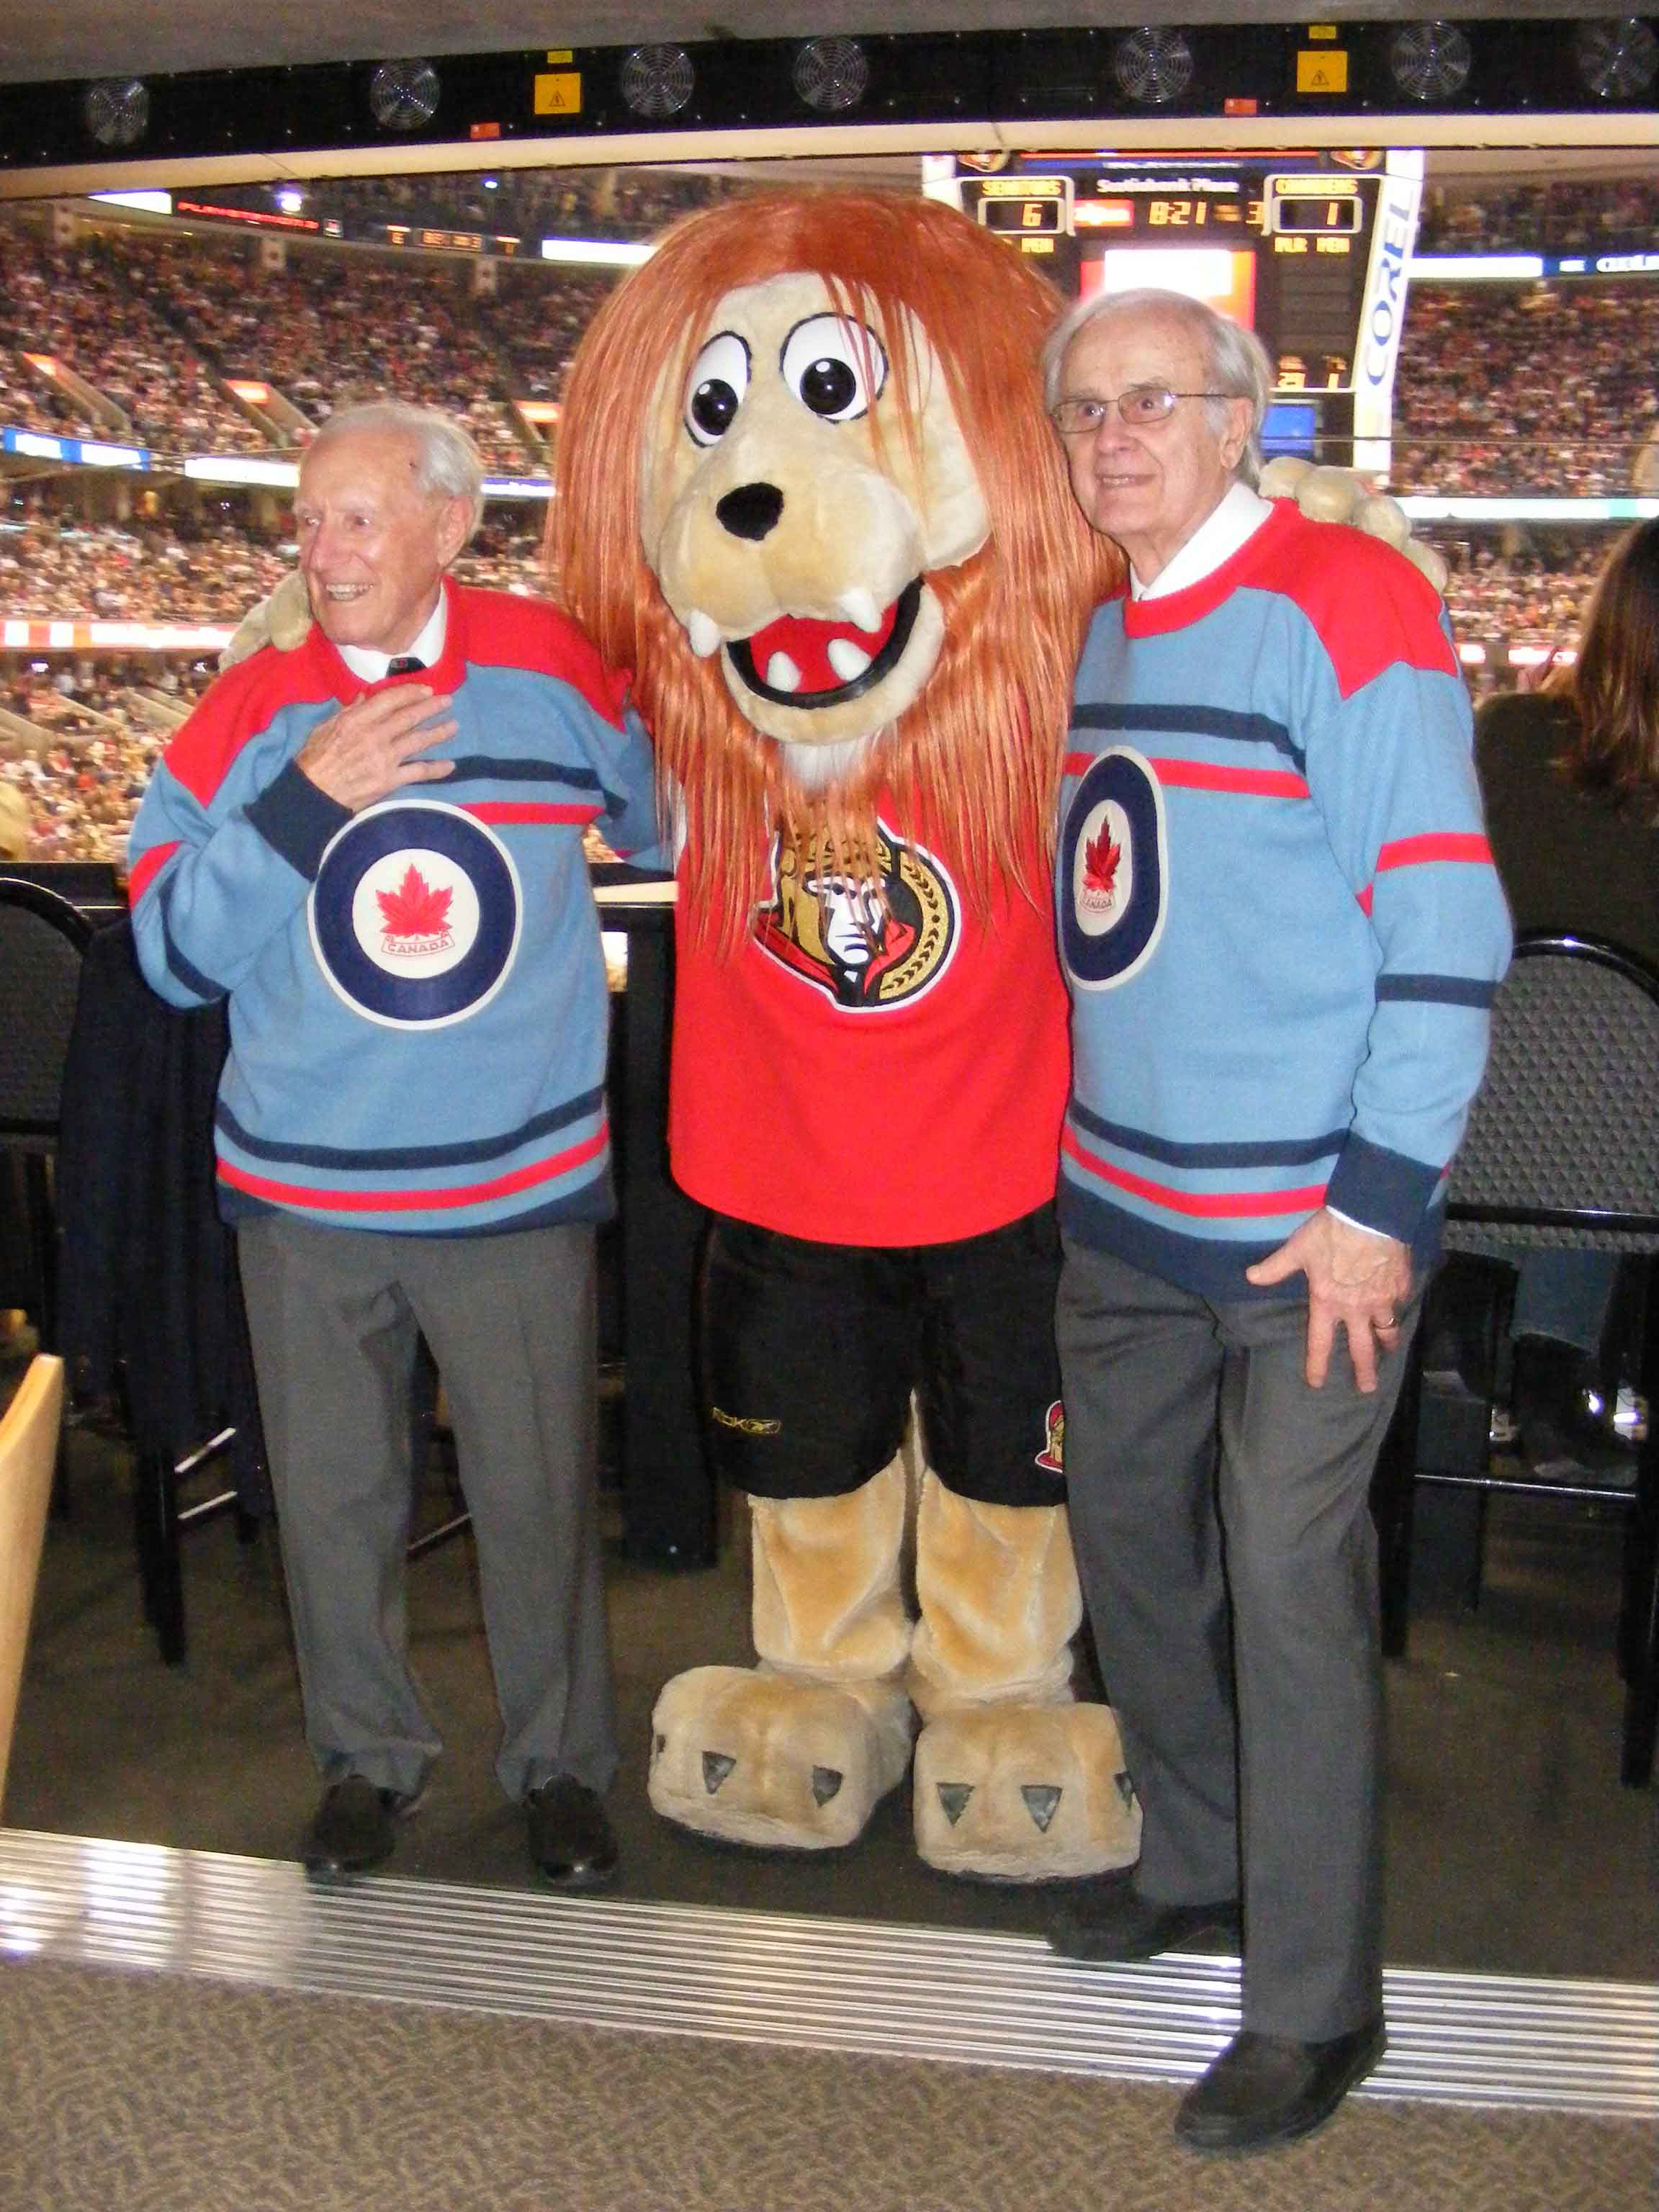 Former RCAF Flyers team mates Ab Renaud (left) and André Laperrière, sporting their replica 1948 Olympics jerseys specially produced by the Royal Canadian Air Force Association, are greeted by Spartacat, the mascot of the Ottawa Senators hockey team. Mr. Renaud and Mr. Laperrière dropped the puck at the February 9, 2008, game between the Senators and the Montreal Canadiens in Ottawa. PHOTO: Dean Black, RCAFA